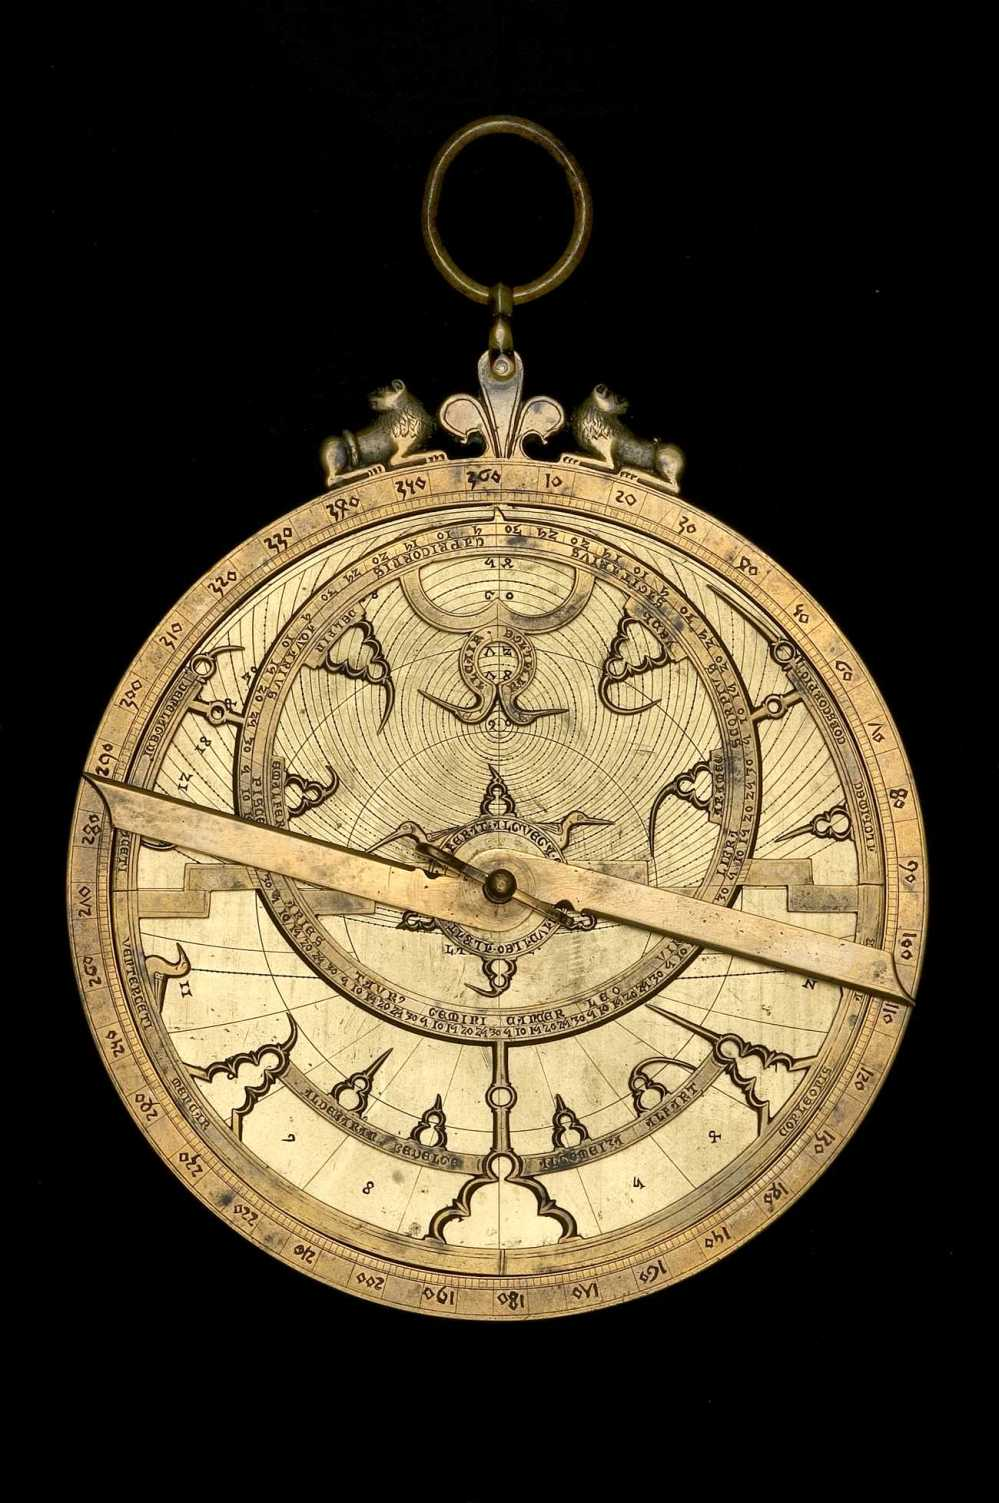 preview image for Hispano-Moorish Astrolabe, Spain?, c. 1300